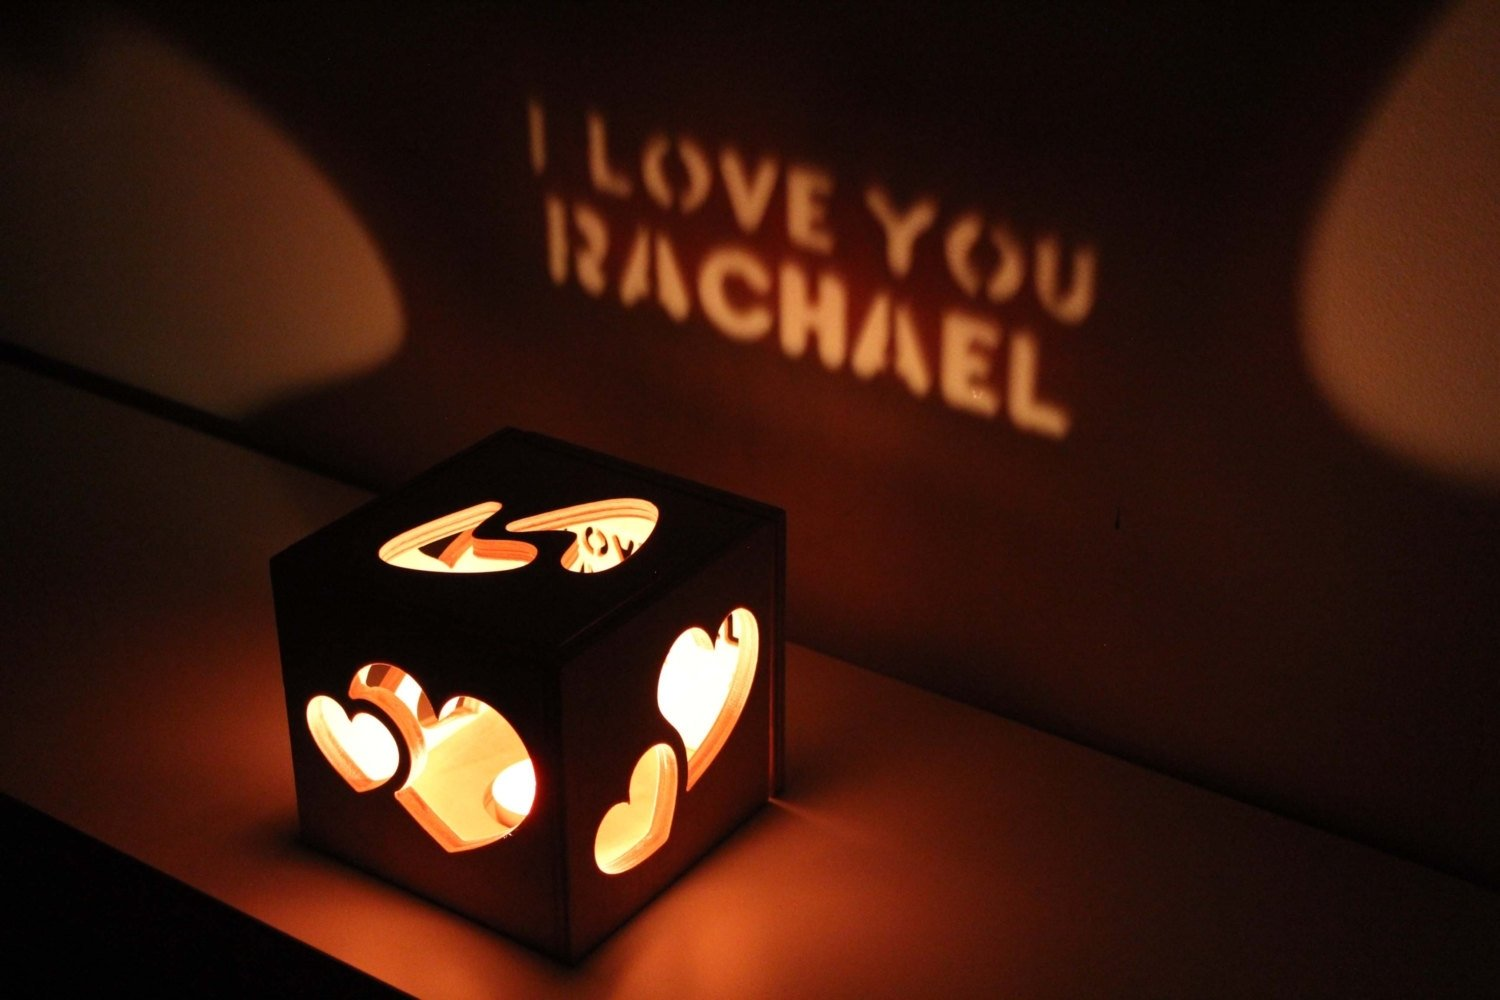 10 Fabulous Creative Girlfriend Birthday Gift Ideas cool diy gifts for girlfriend in thrifty boyfriend girlfriend diy 1 2020